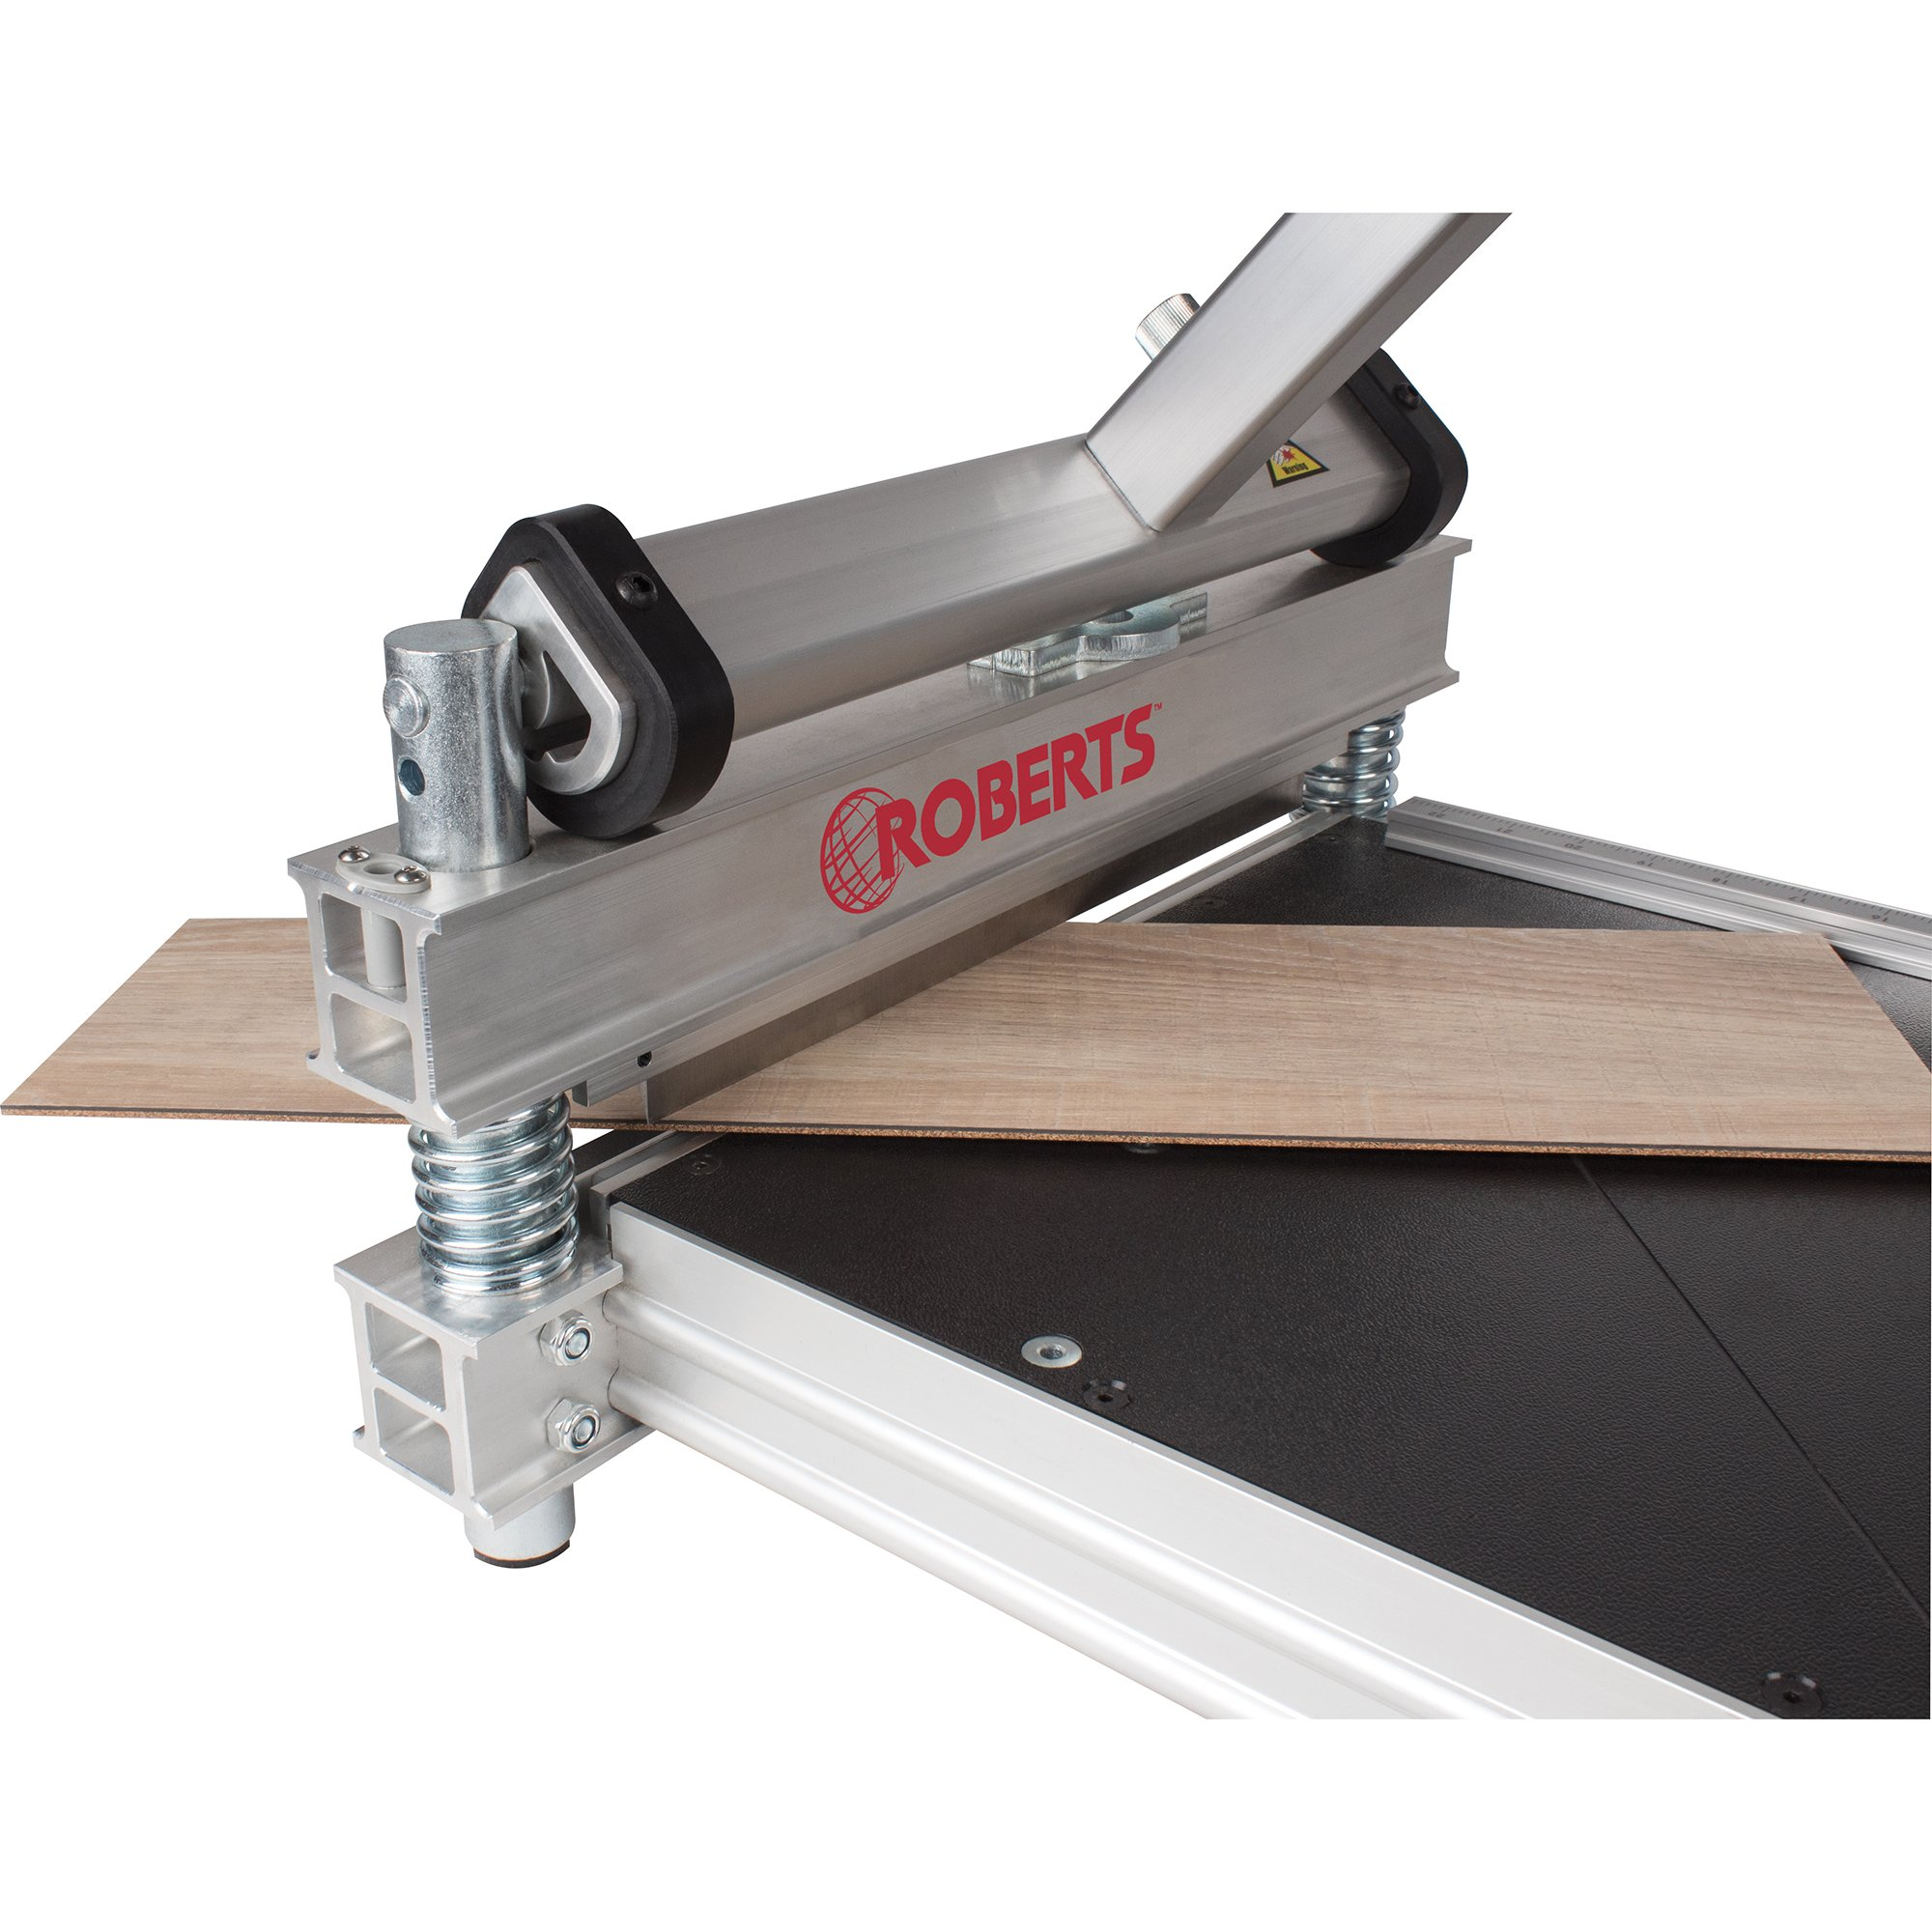 Roberts 10-94 Multi-Floor Cutter, 13-inch by Roberts (Image #3)